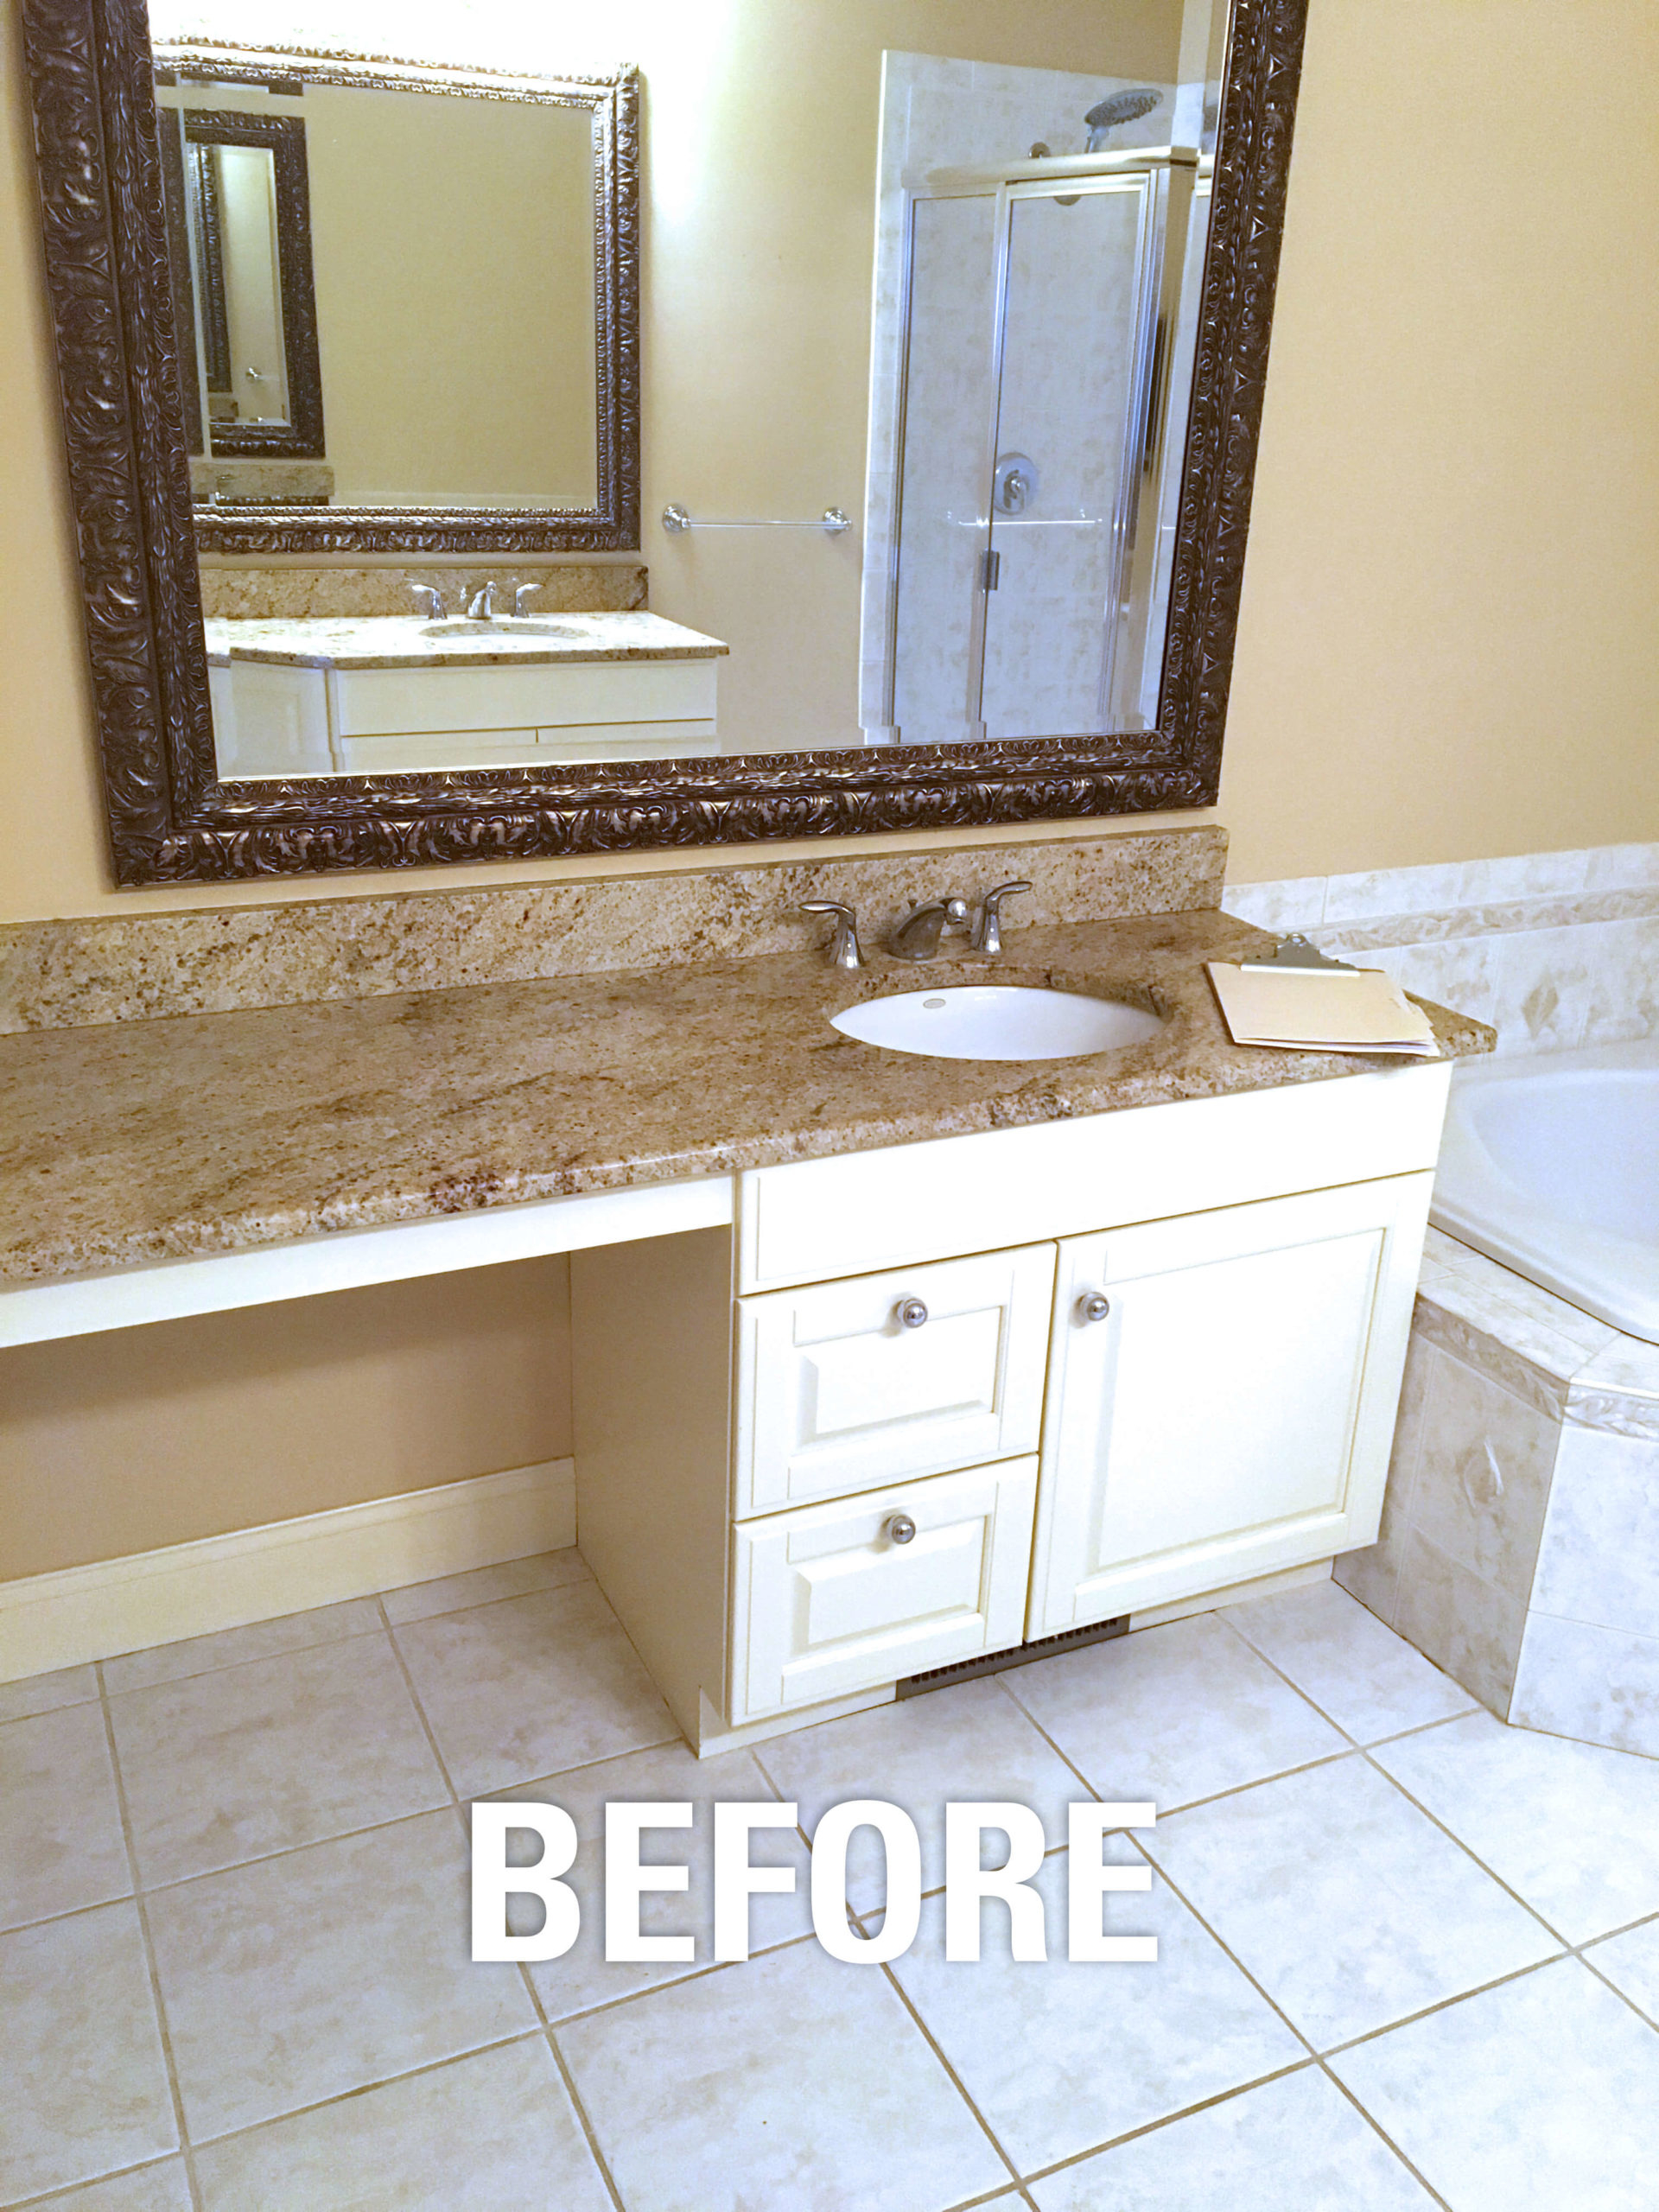 Before we installed the bathroom vanity.